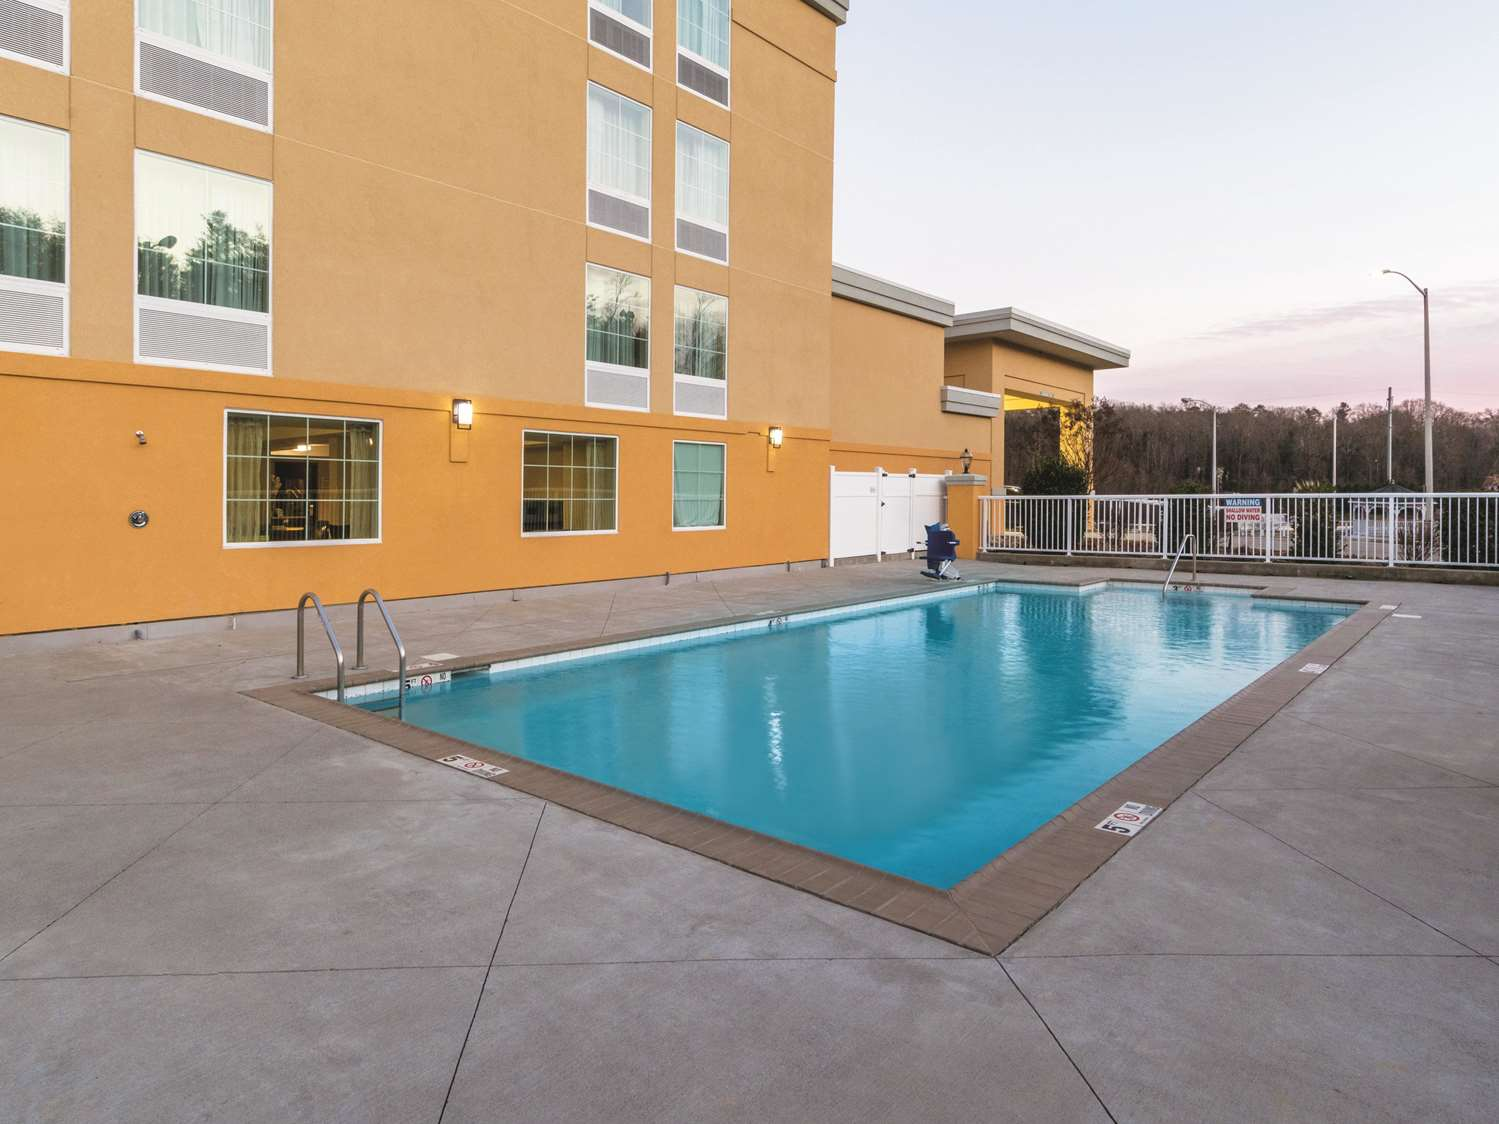 Pool - La Quinta Inn & Suites Central Papermill Knoxville